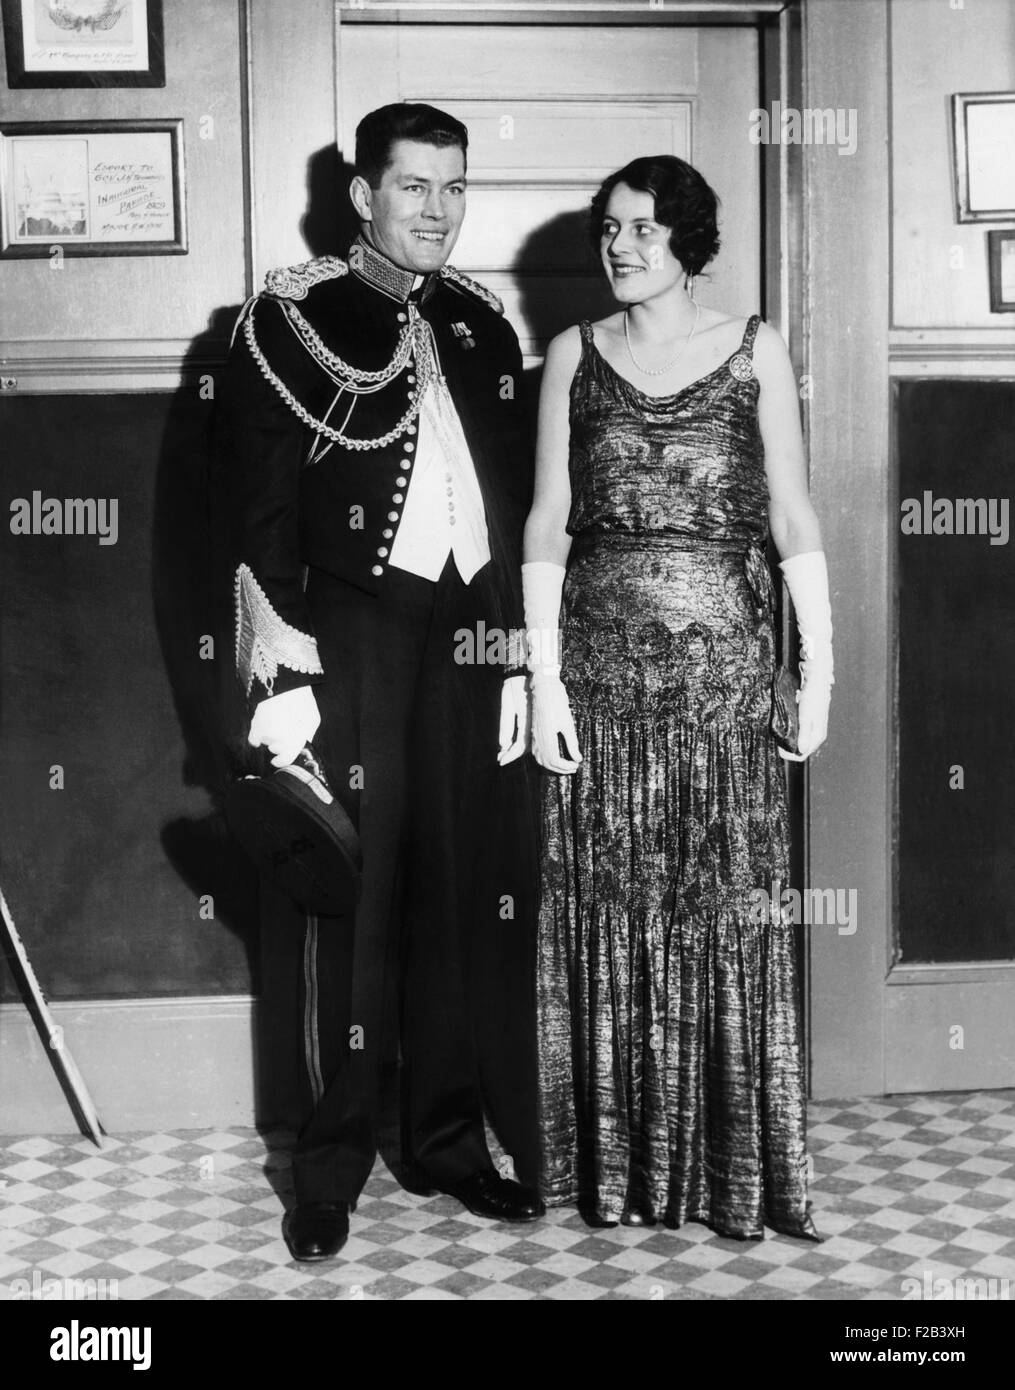 Gene Tunney and wife Polly Lauder Tunney in formal attire. He is wearing a dress uniform of the Marine Corps. Tunney - Stock Image